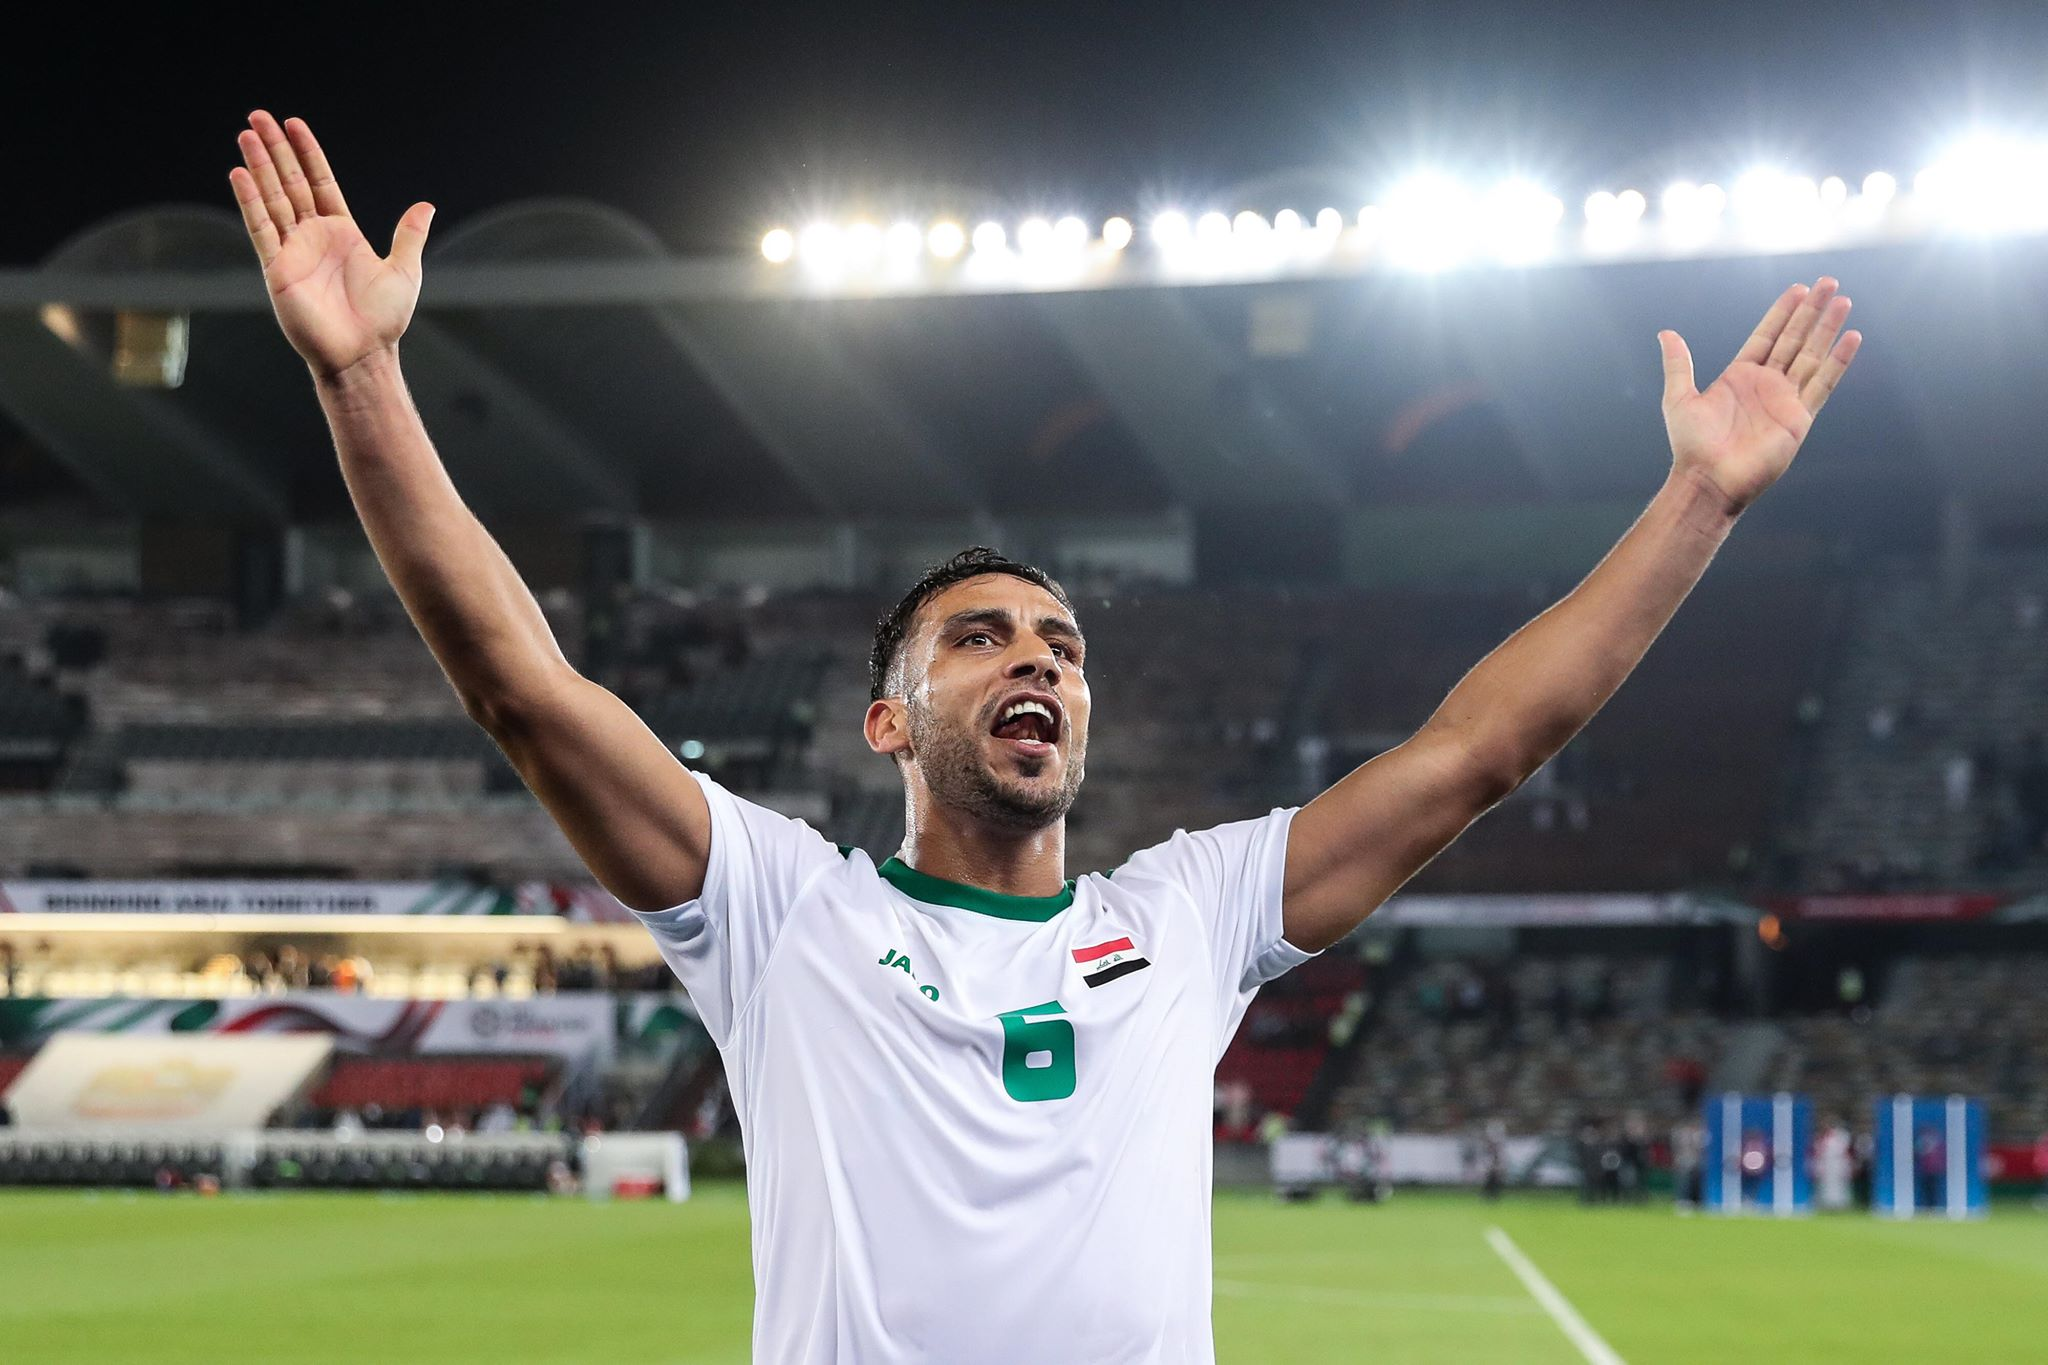 Catching up with Iraq star Ali Adnan